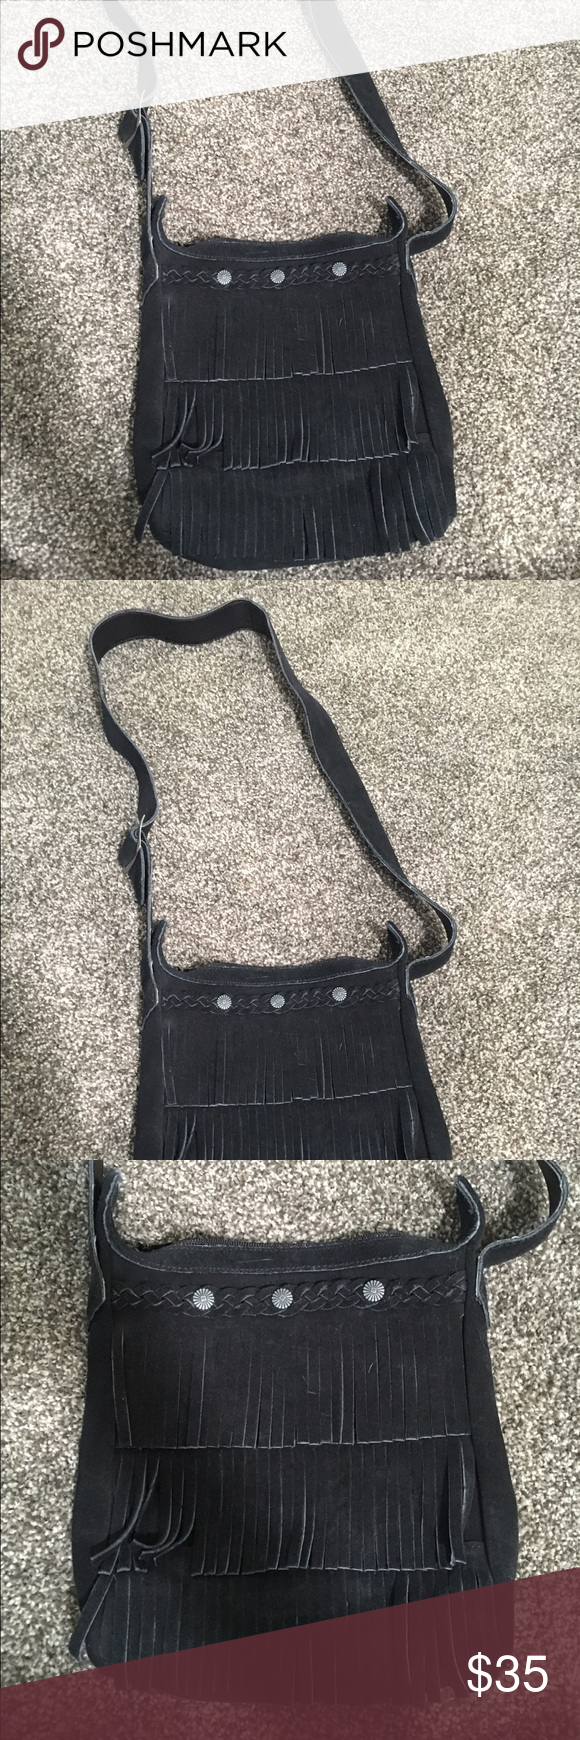 Minnetonka Fringe Purse Brand new Minnetonka fringe purse. Minnetonka Bags Crossbody Bags